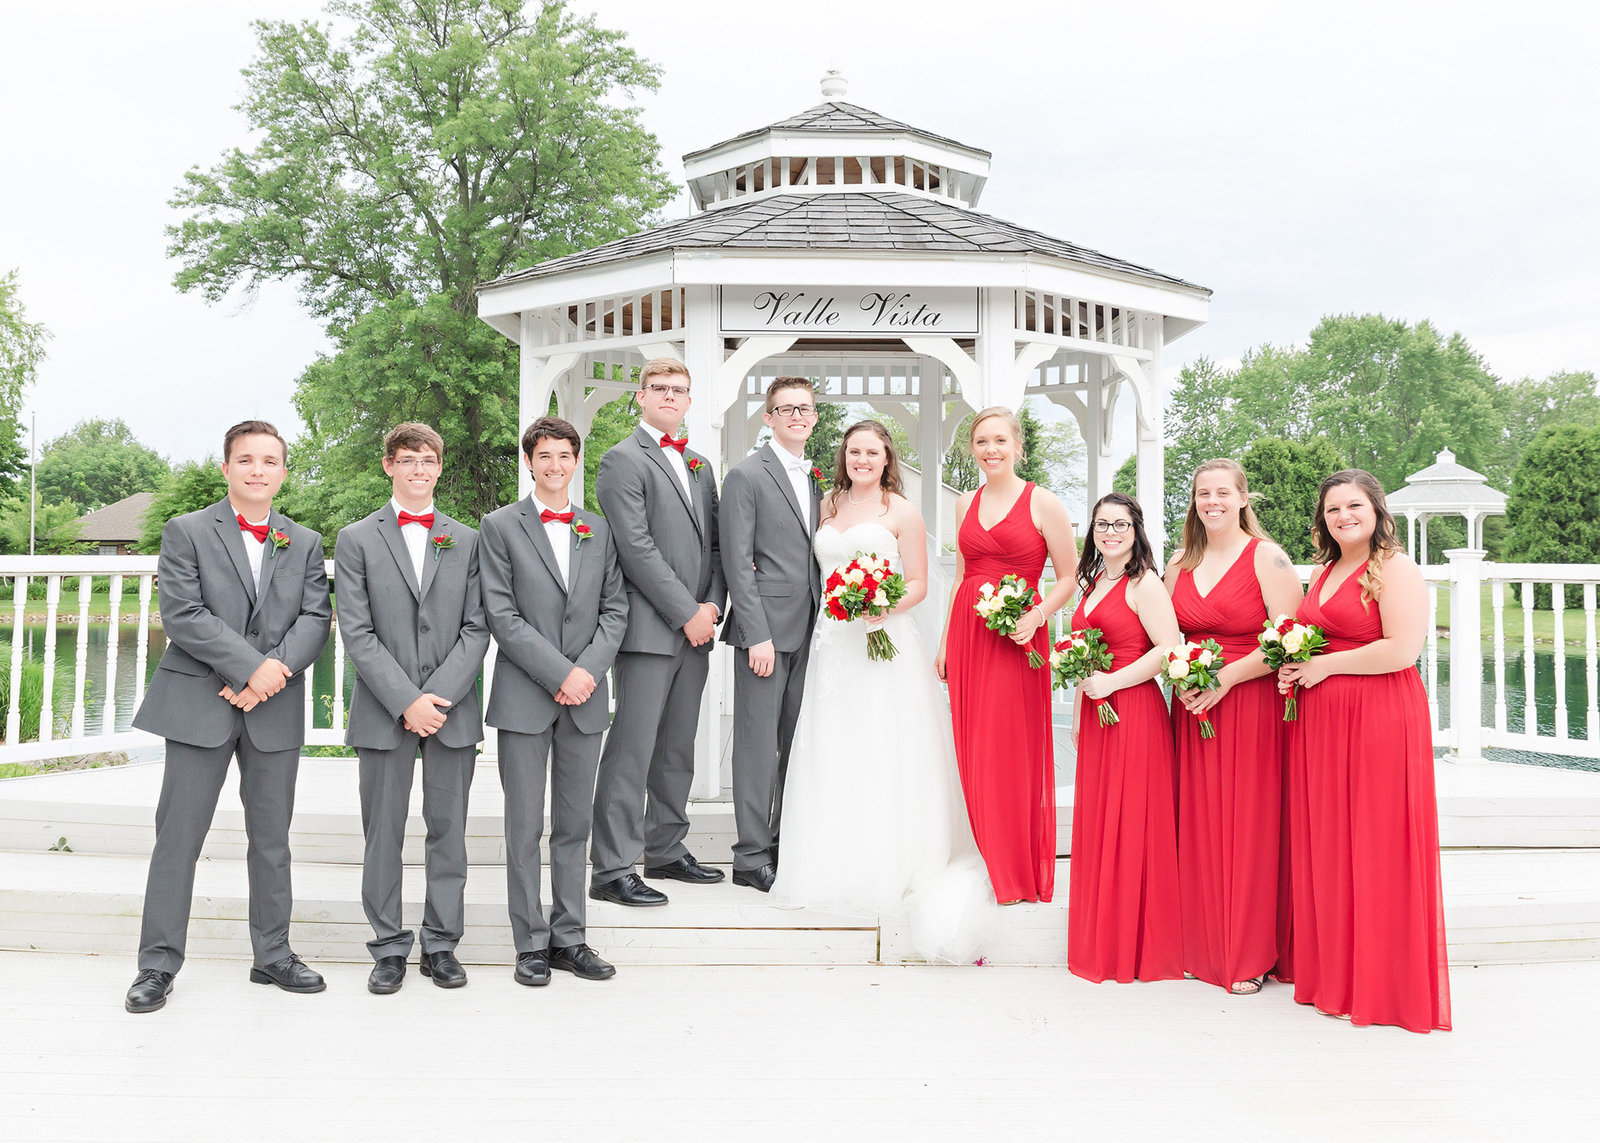 Valle Vista Indianapolis wedding bridal party red and charcoal photo by Simply Seeking Photography